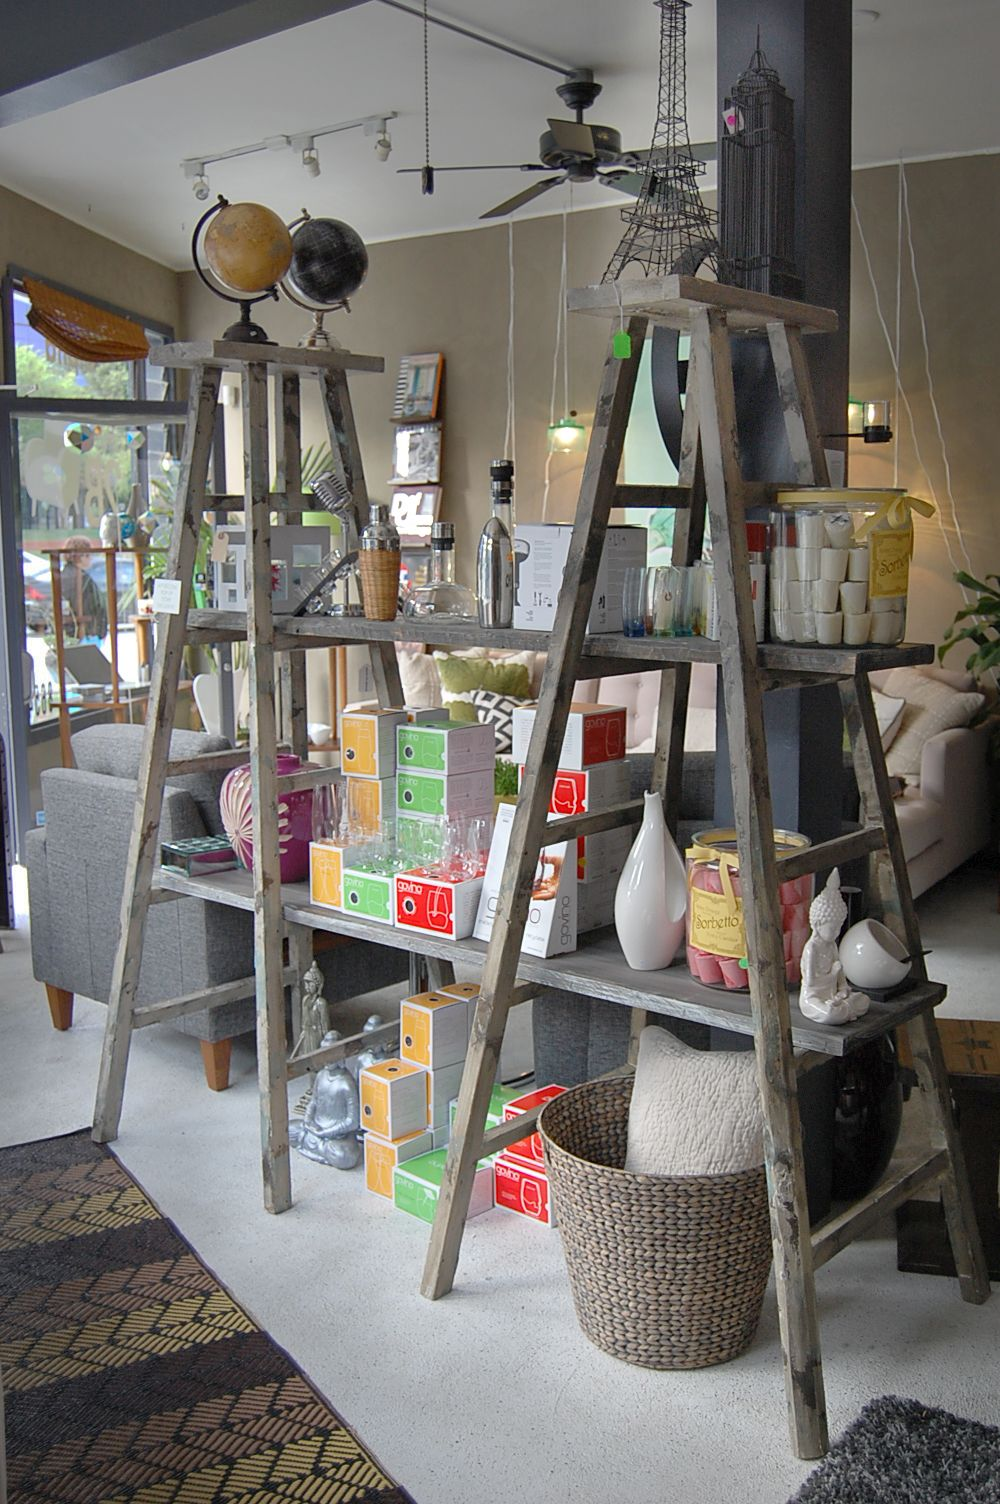 How to decorate with vintage ladders ways to inspire